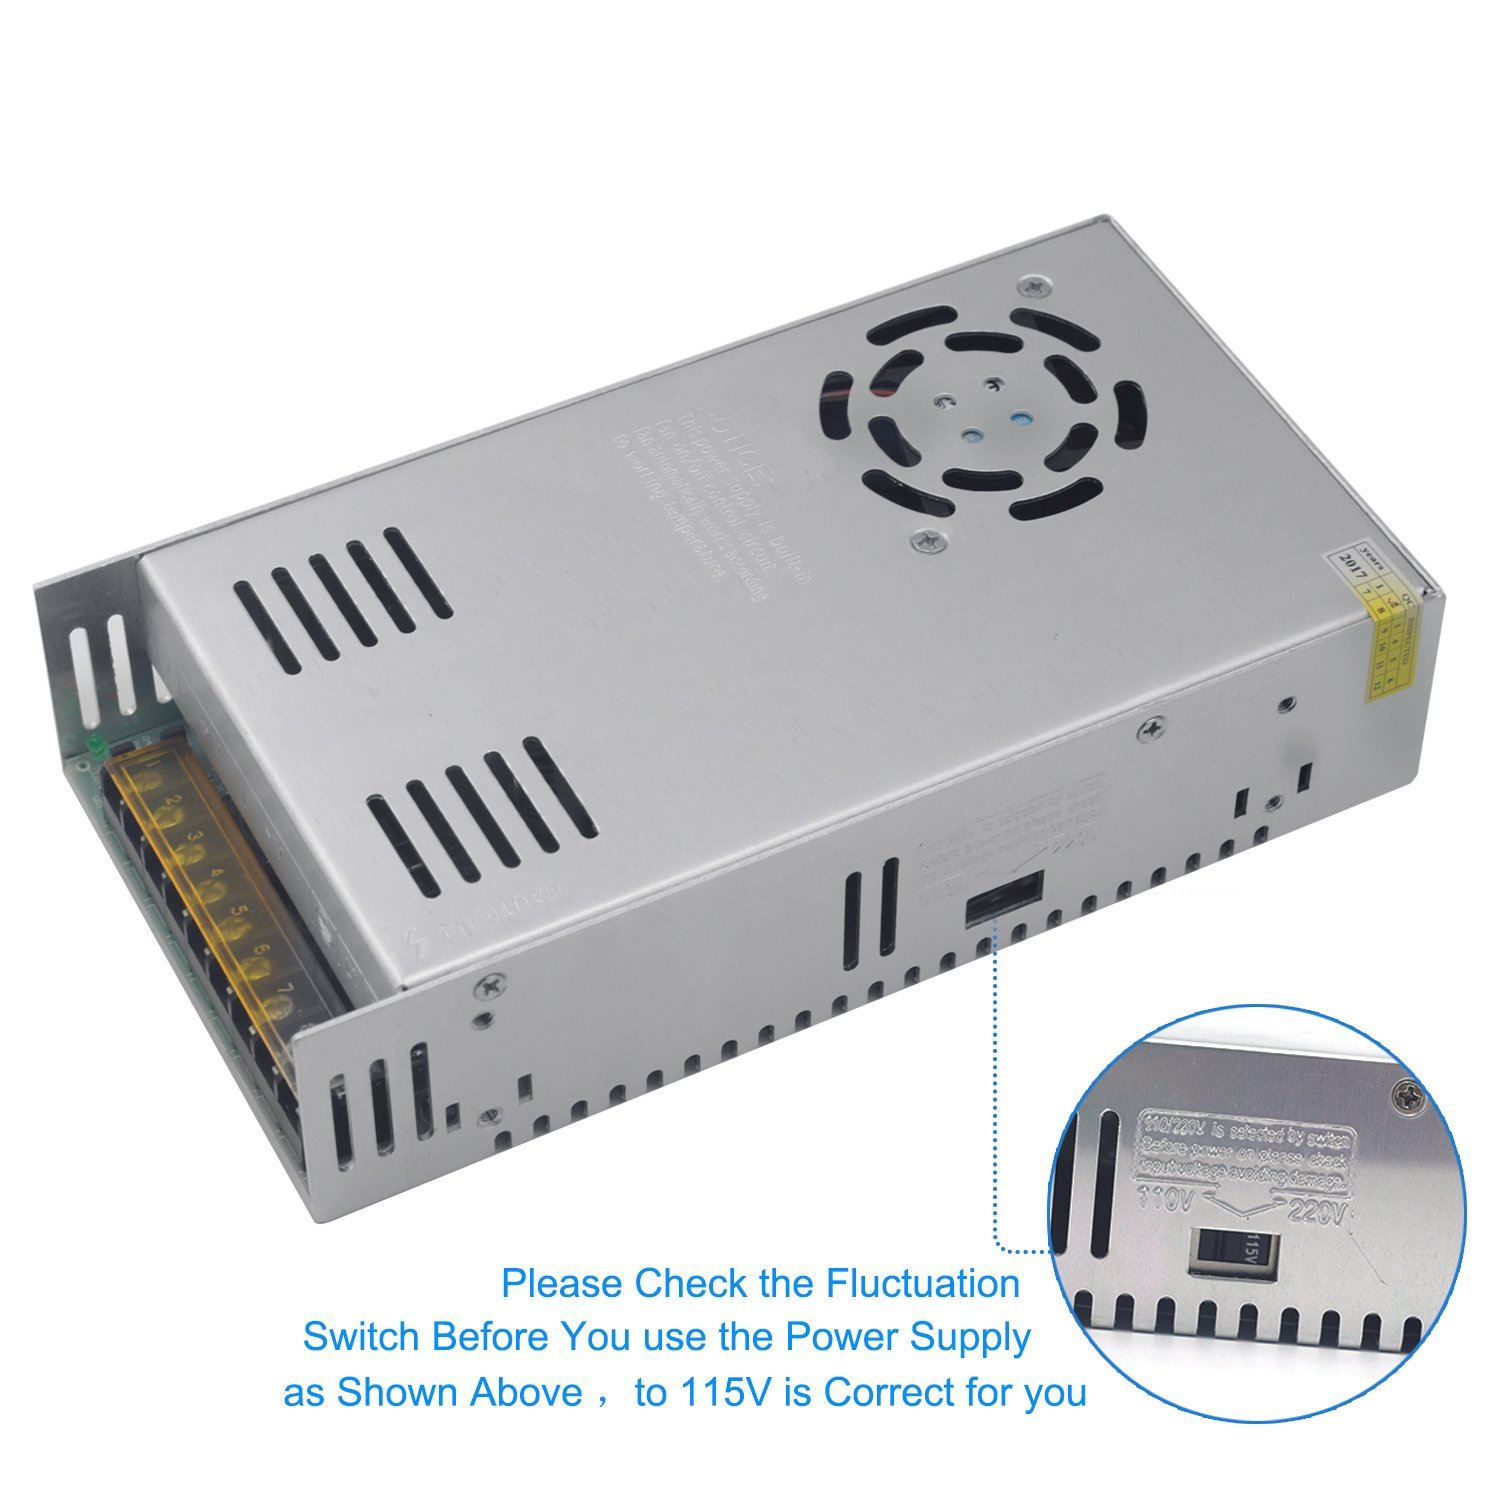 EAGWELL 24v 15a DC Universal Regulated Switching Power Supply 360w for CCTV,Radio,Computer Project, 3D Printer,LED Driver by EAGWELL (Image #5)